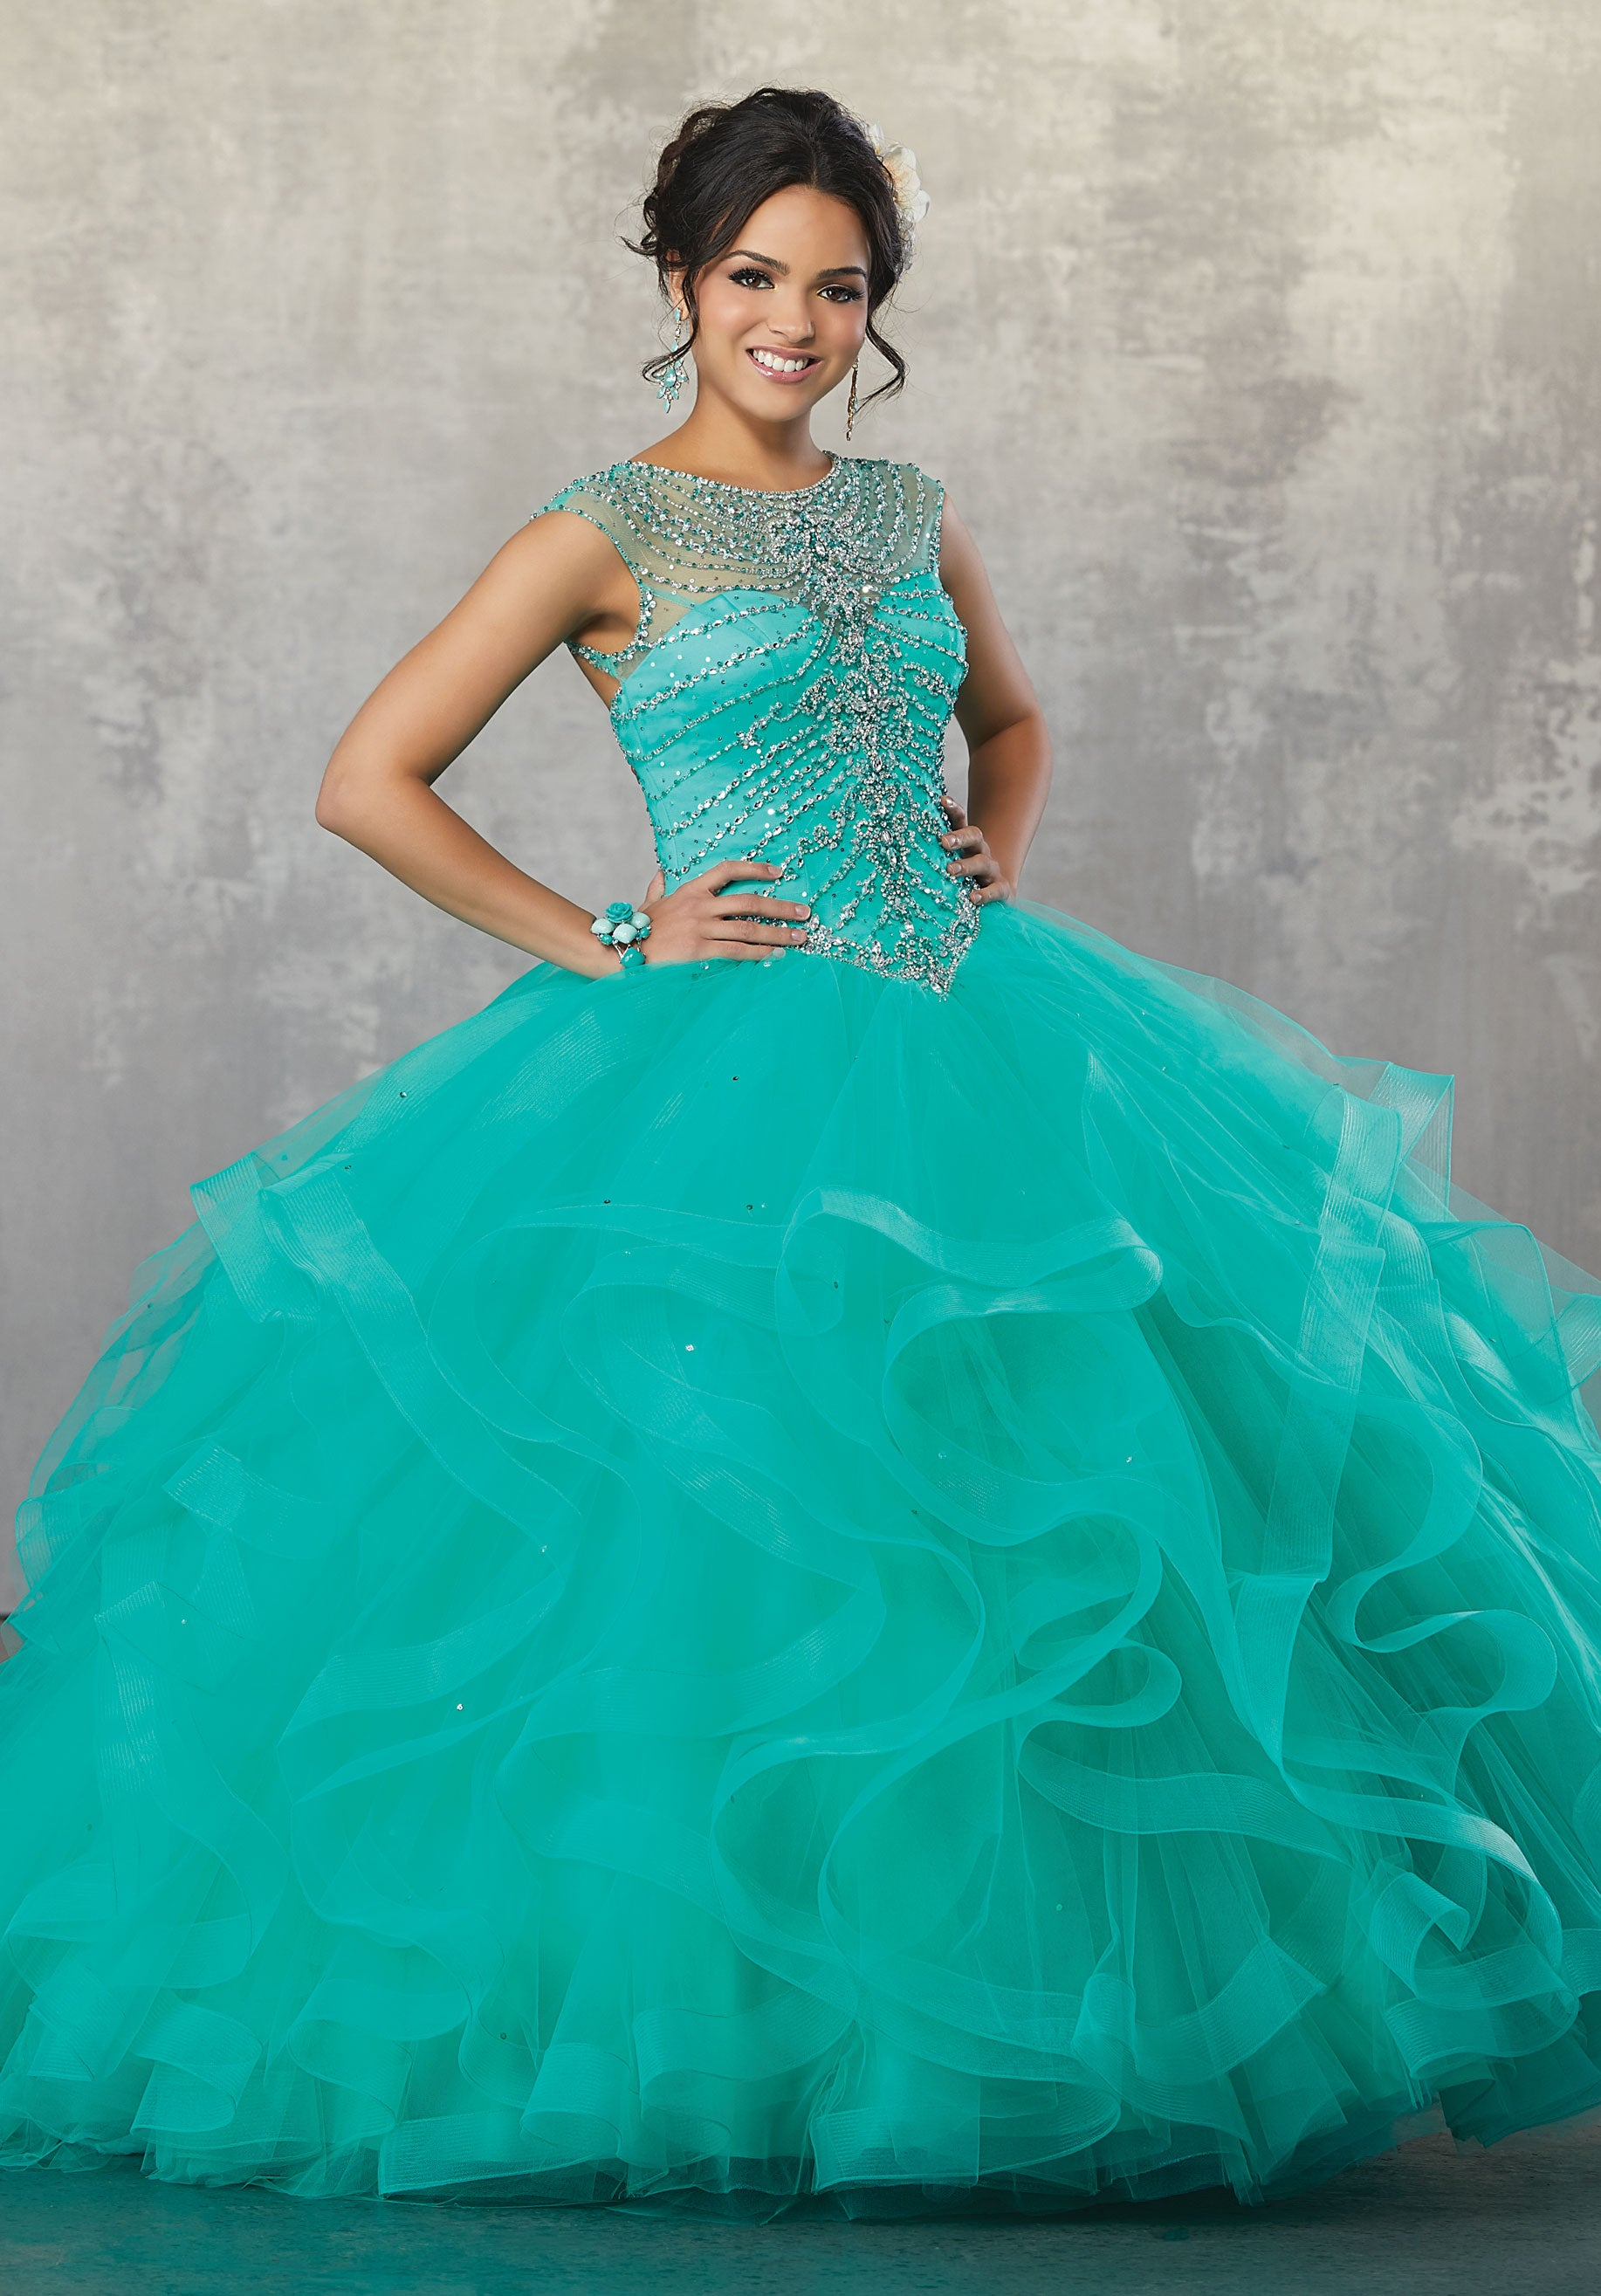 78058 Quinceanera Ballgown with a Jewel Beaded Bodice on a Flounced Tulle